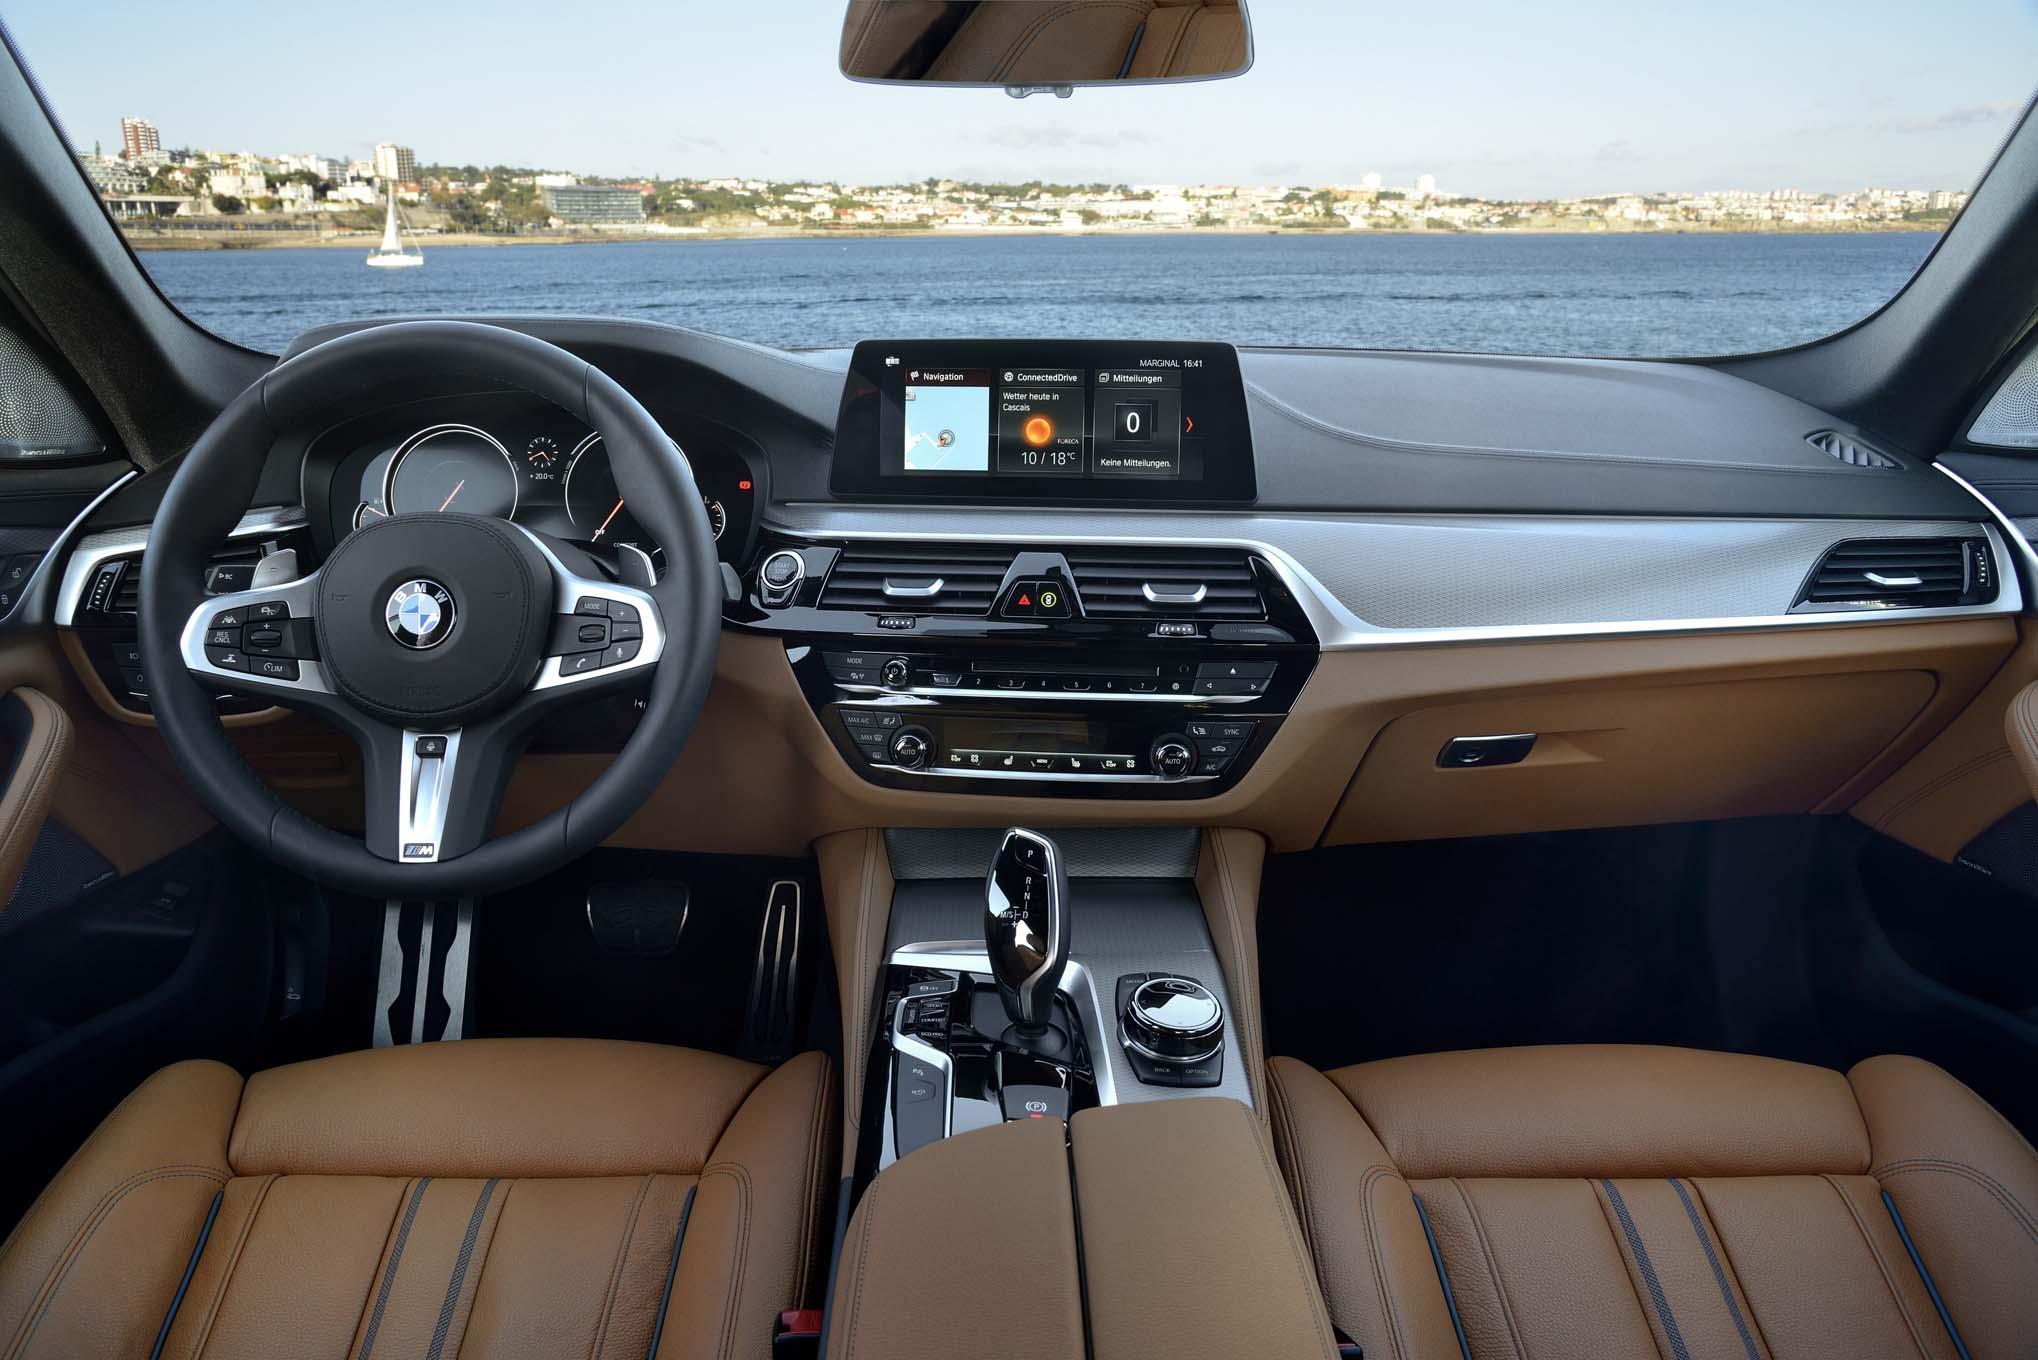 2017 BMW 540i M Sport Interior Dashboard (Photo 16 of 35)